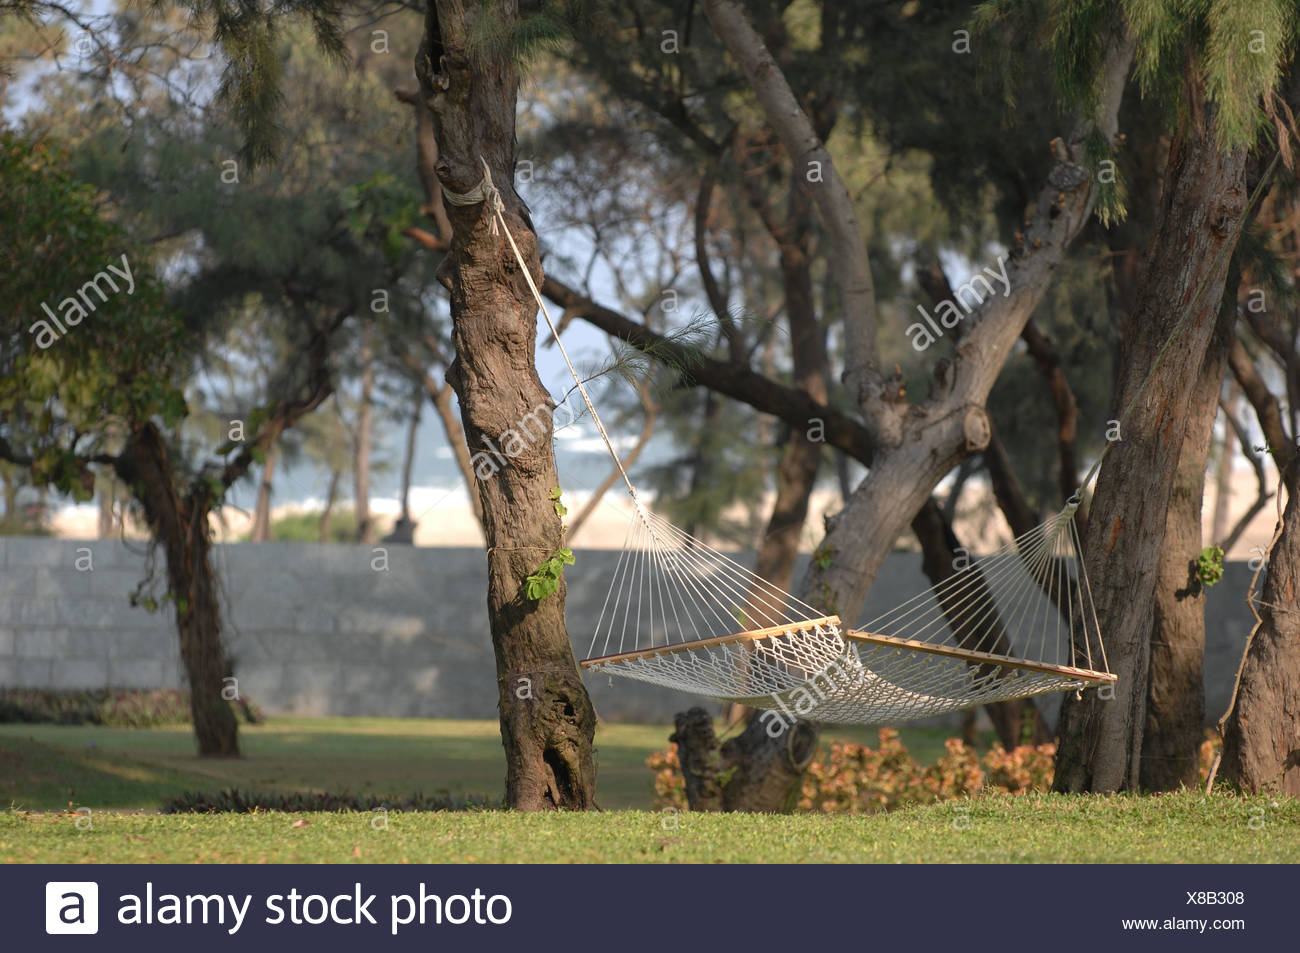 Hammock Hanging From Trees Stock Photo 280526968 Alamy